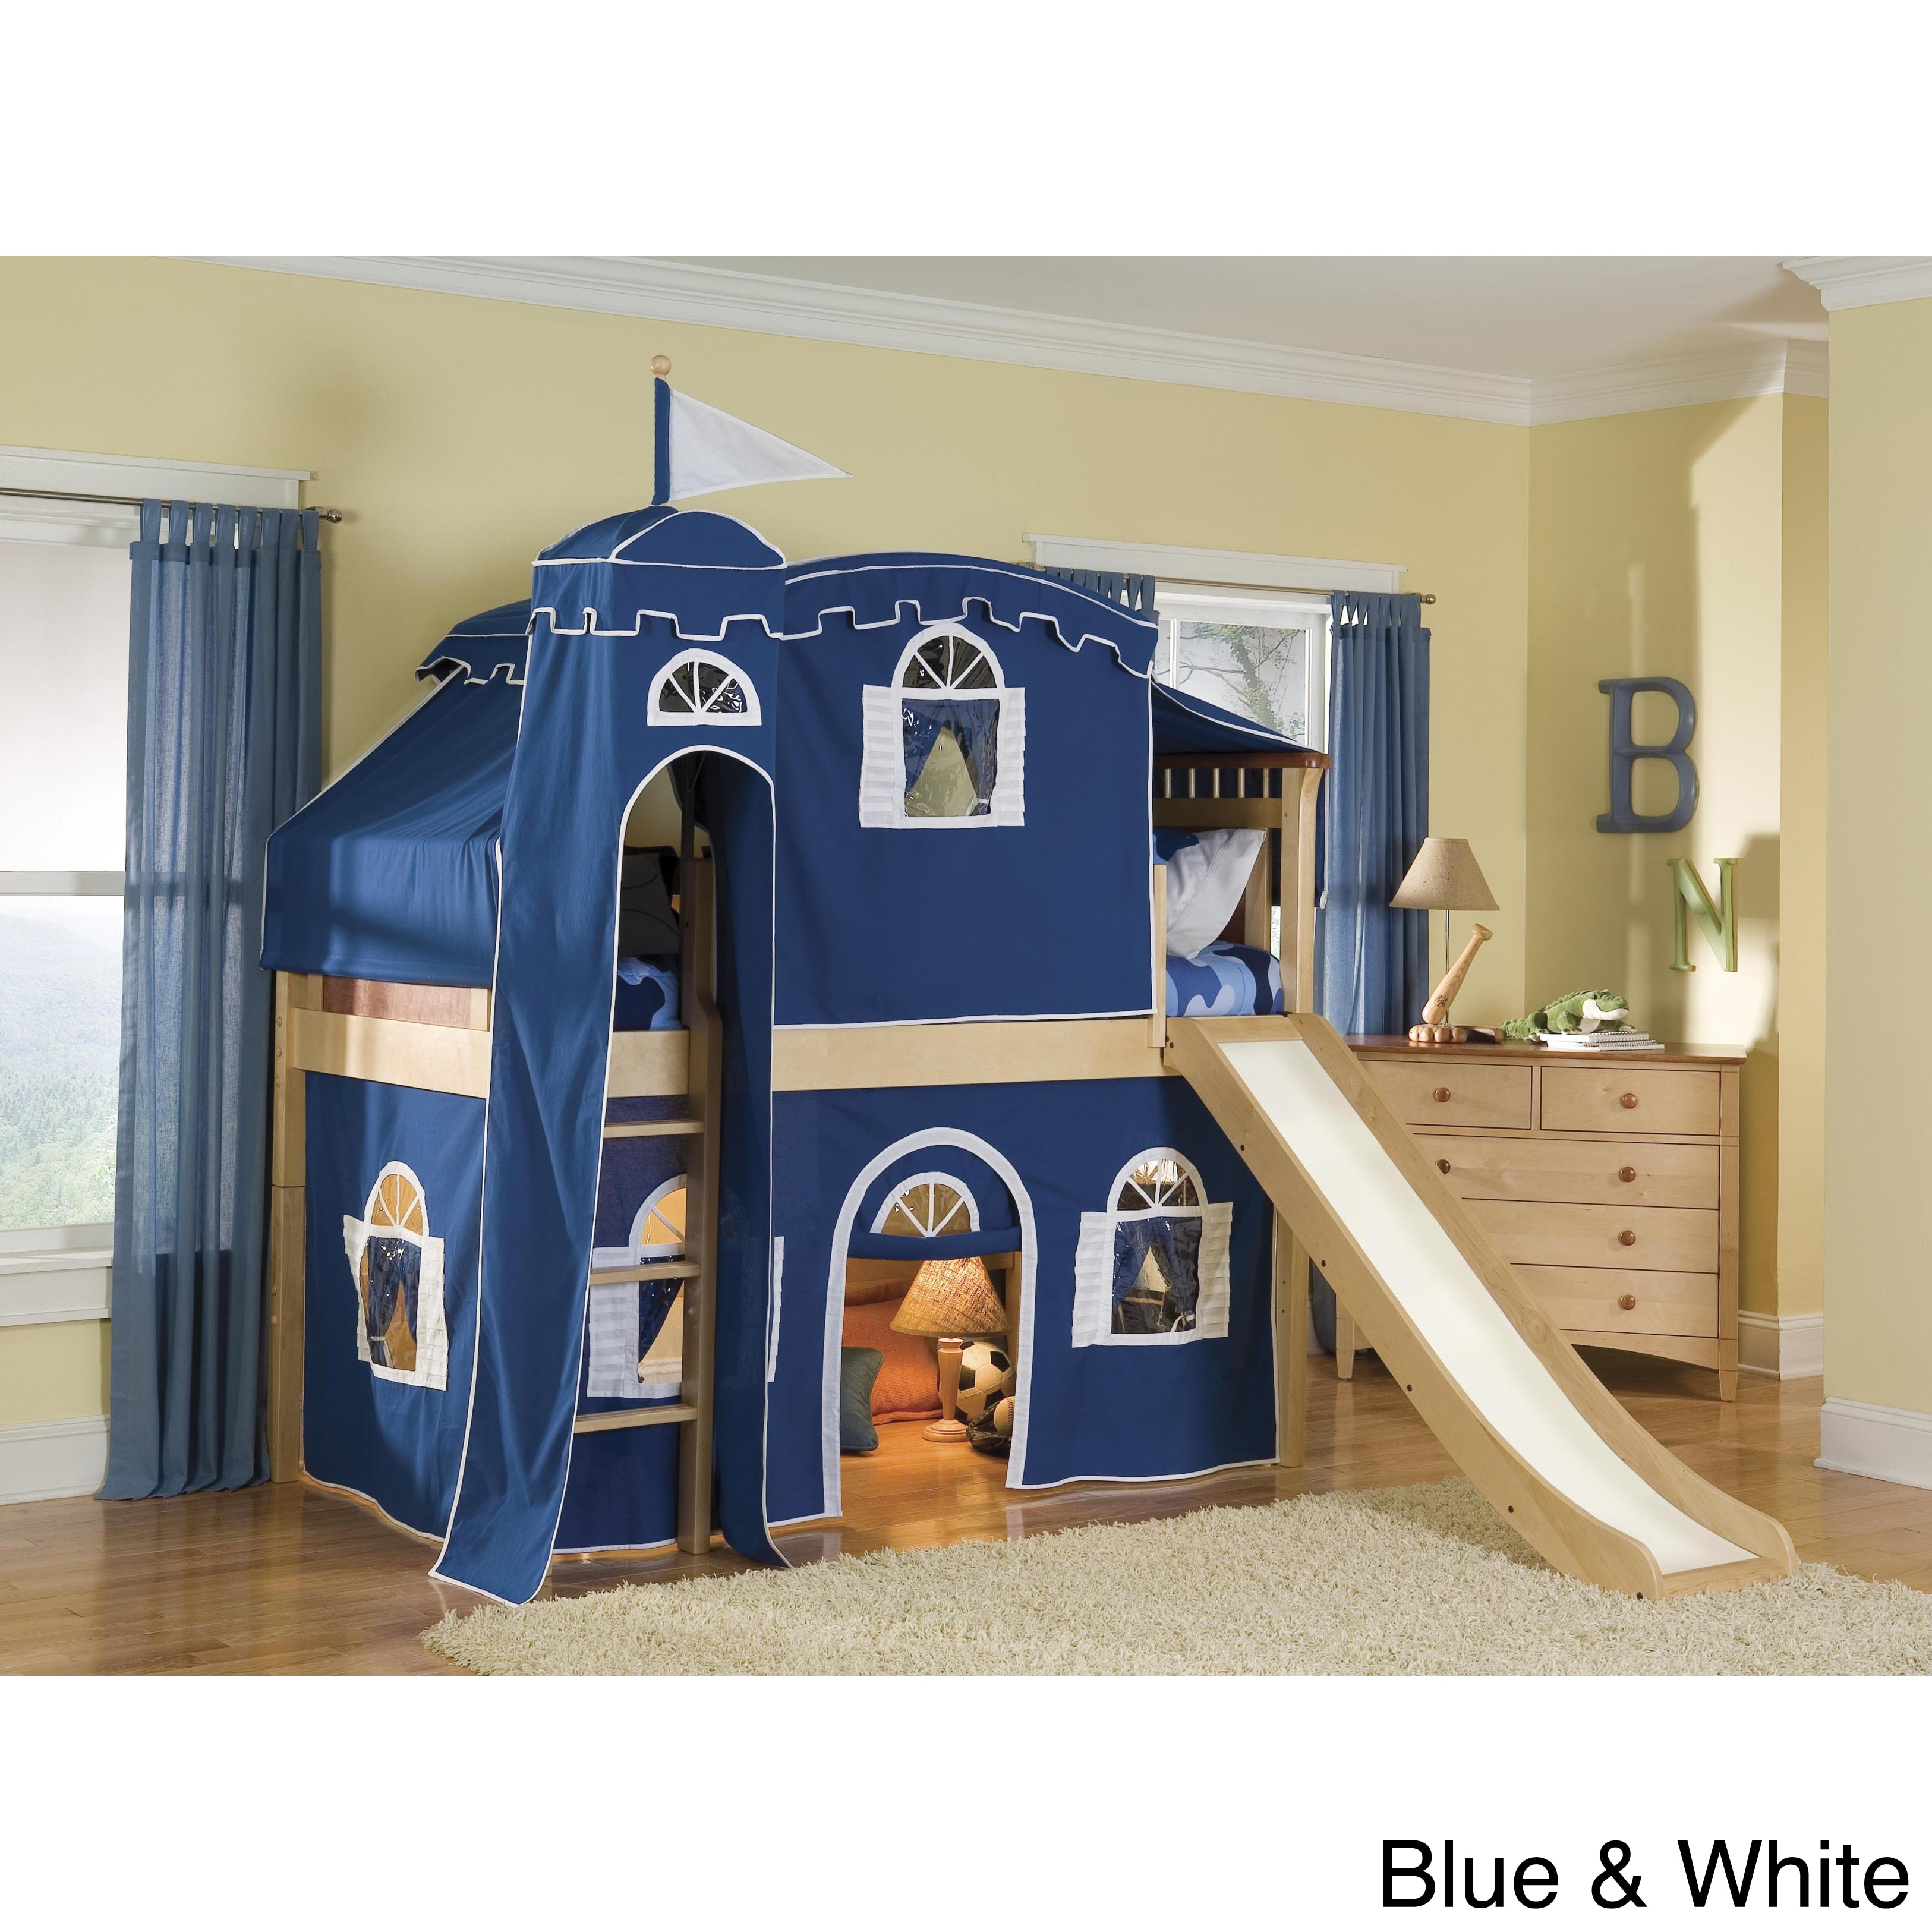 Bennington Low Loft Twin Bed With Castle Tower Top Tent